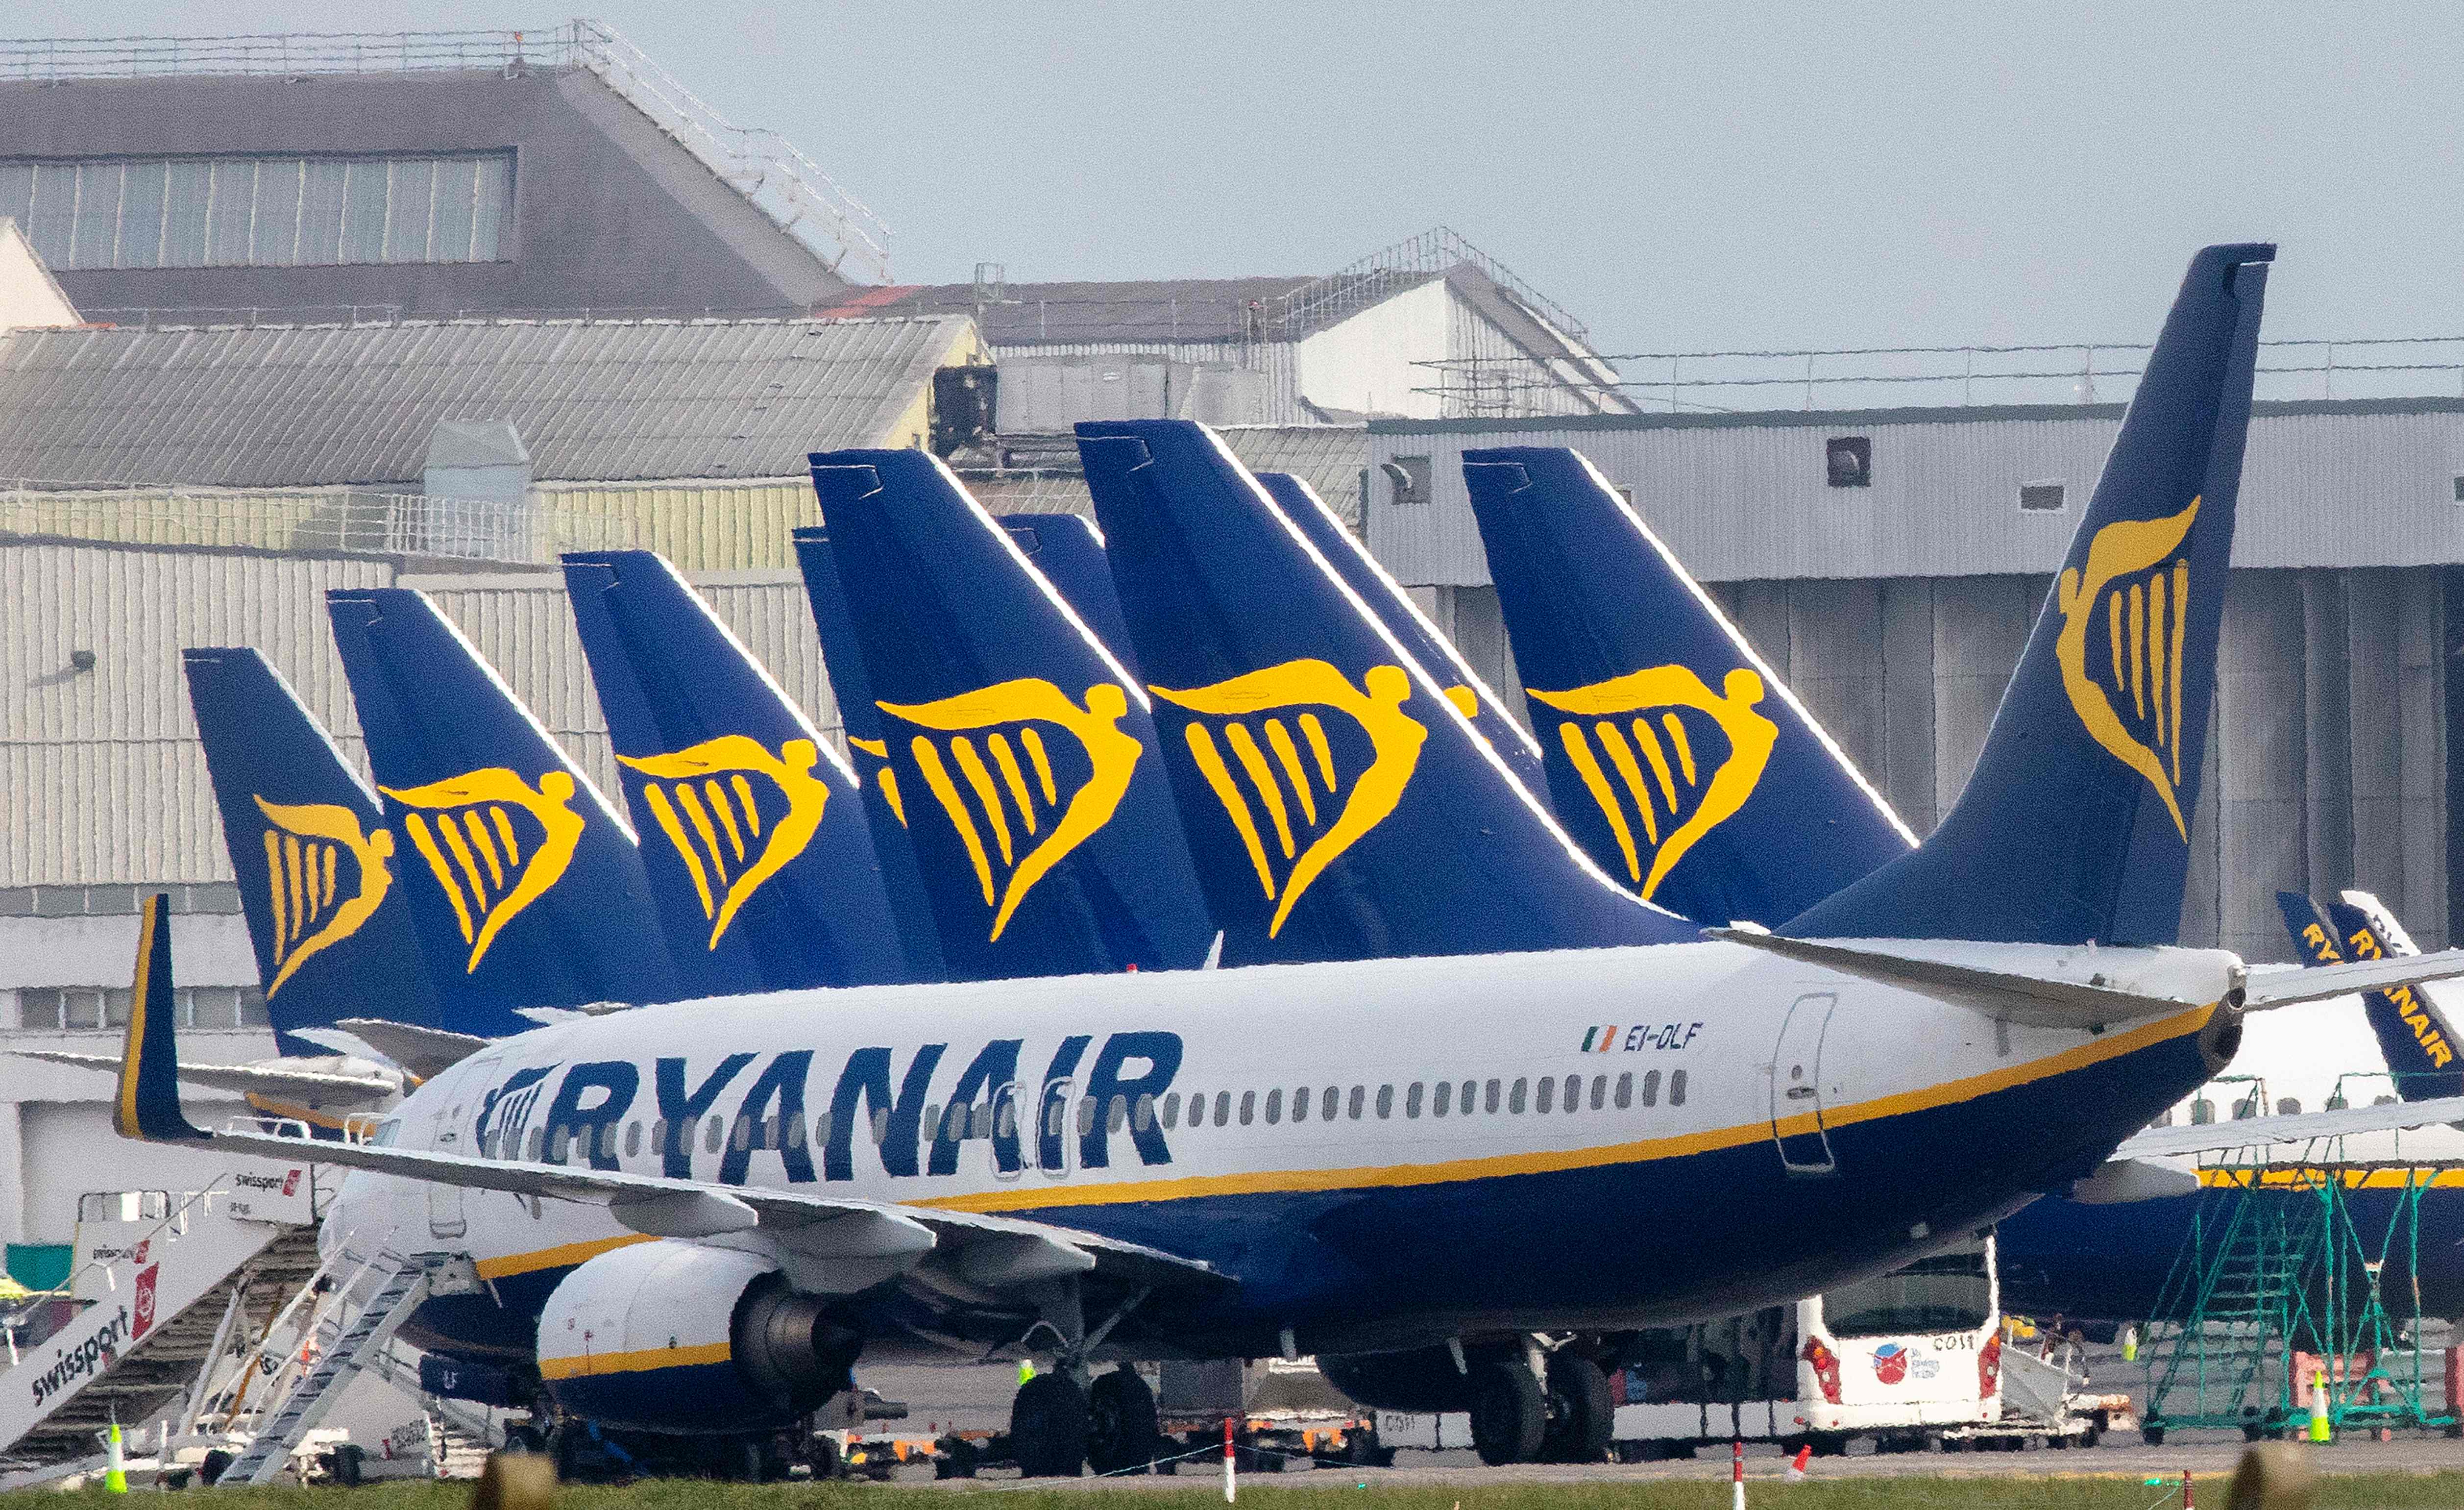 Ryanair's flash sale includes flights to Italy and Greece for less than a tenner